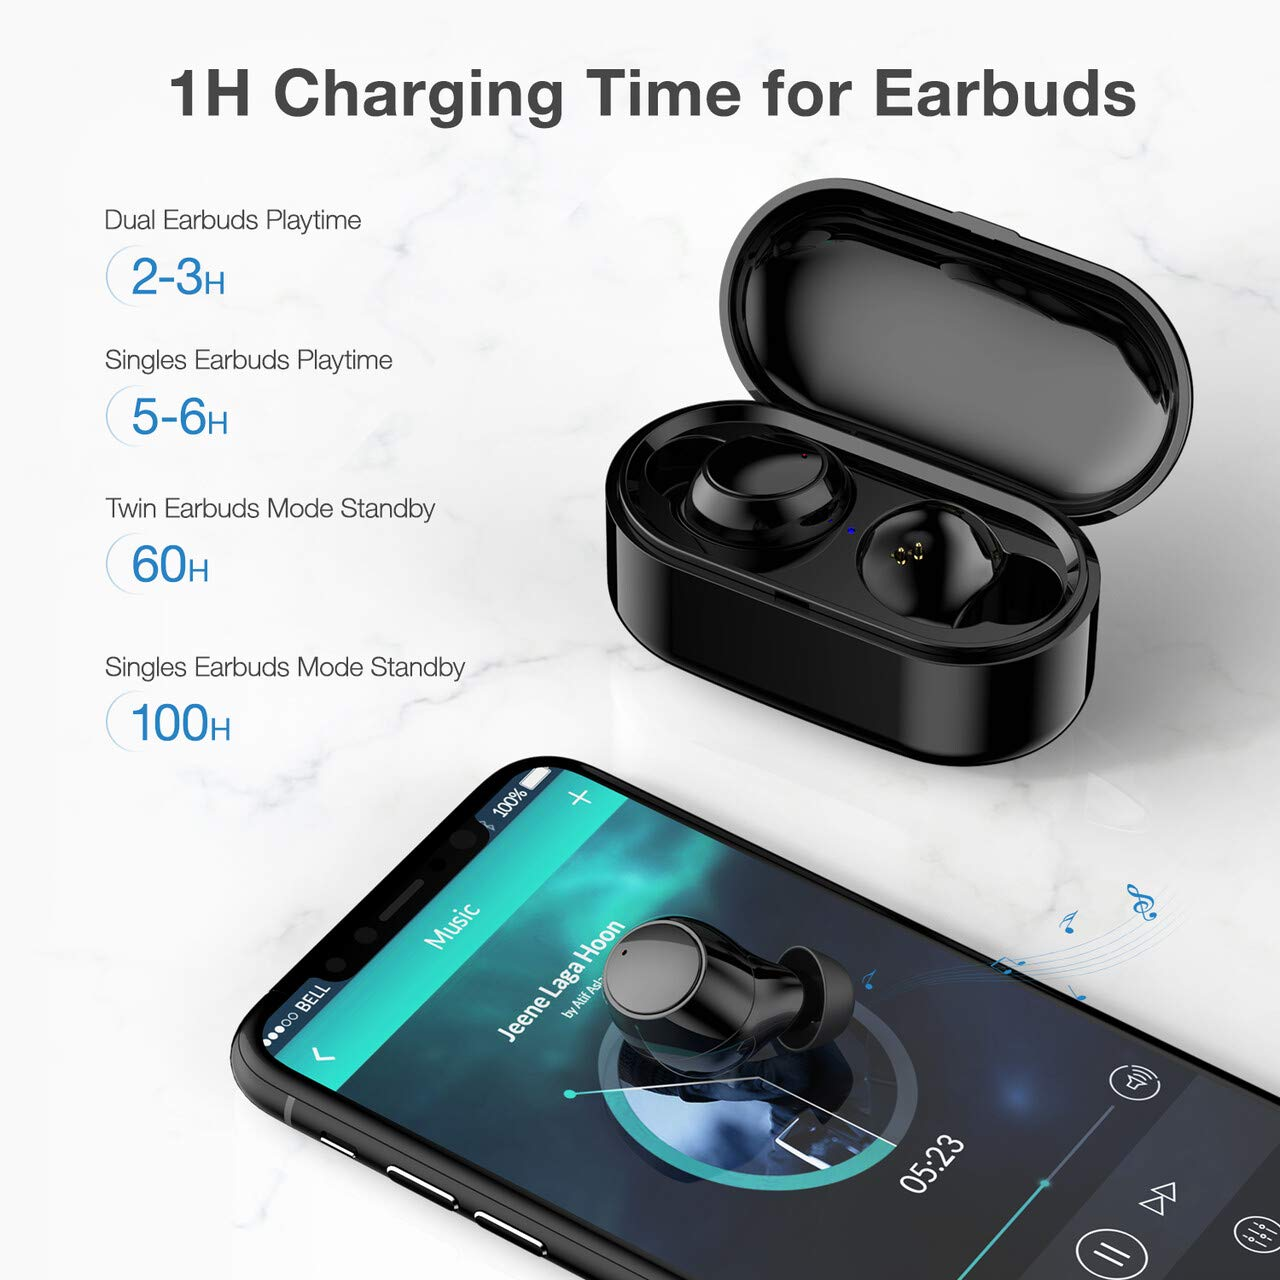 Poweradd Bluetooth 5.0 Wireless Headphones, True Wireless Earphones Earbuds 3D Stereo Sound Built-in Mic with Portable Charging Case